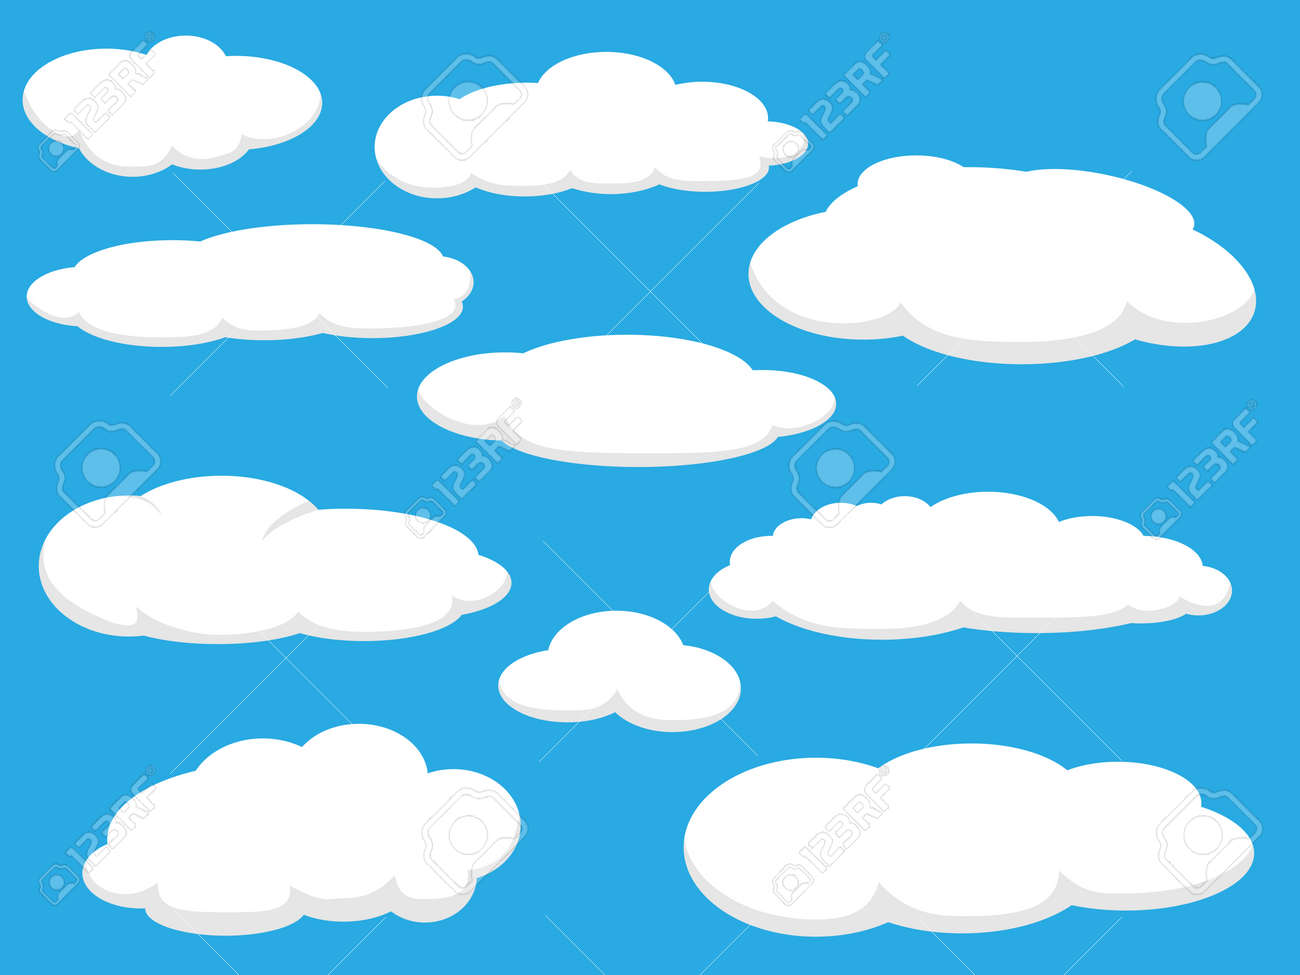 Cartoon clouds vector illustration pack - 42763547